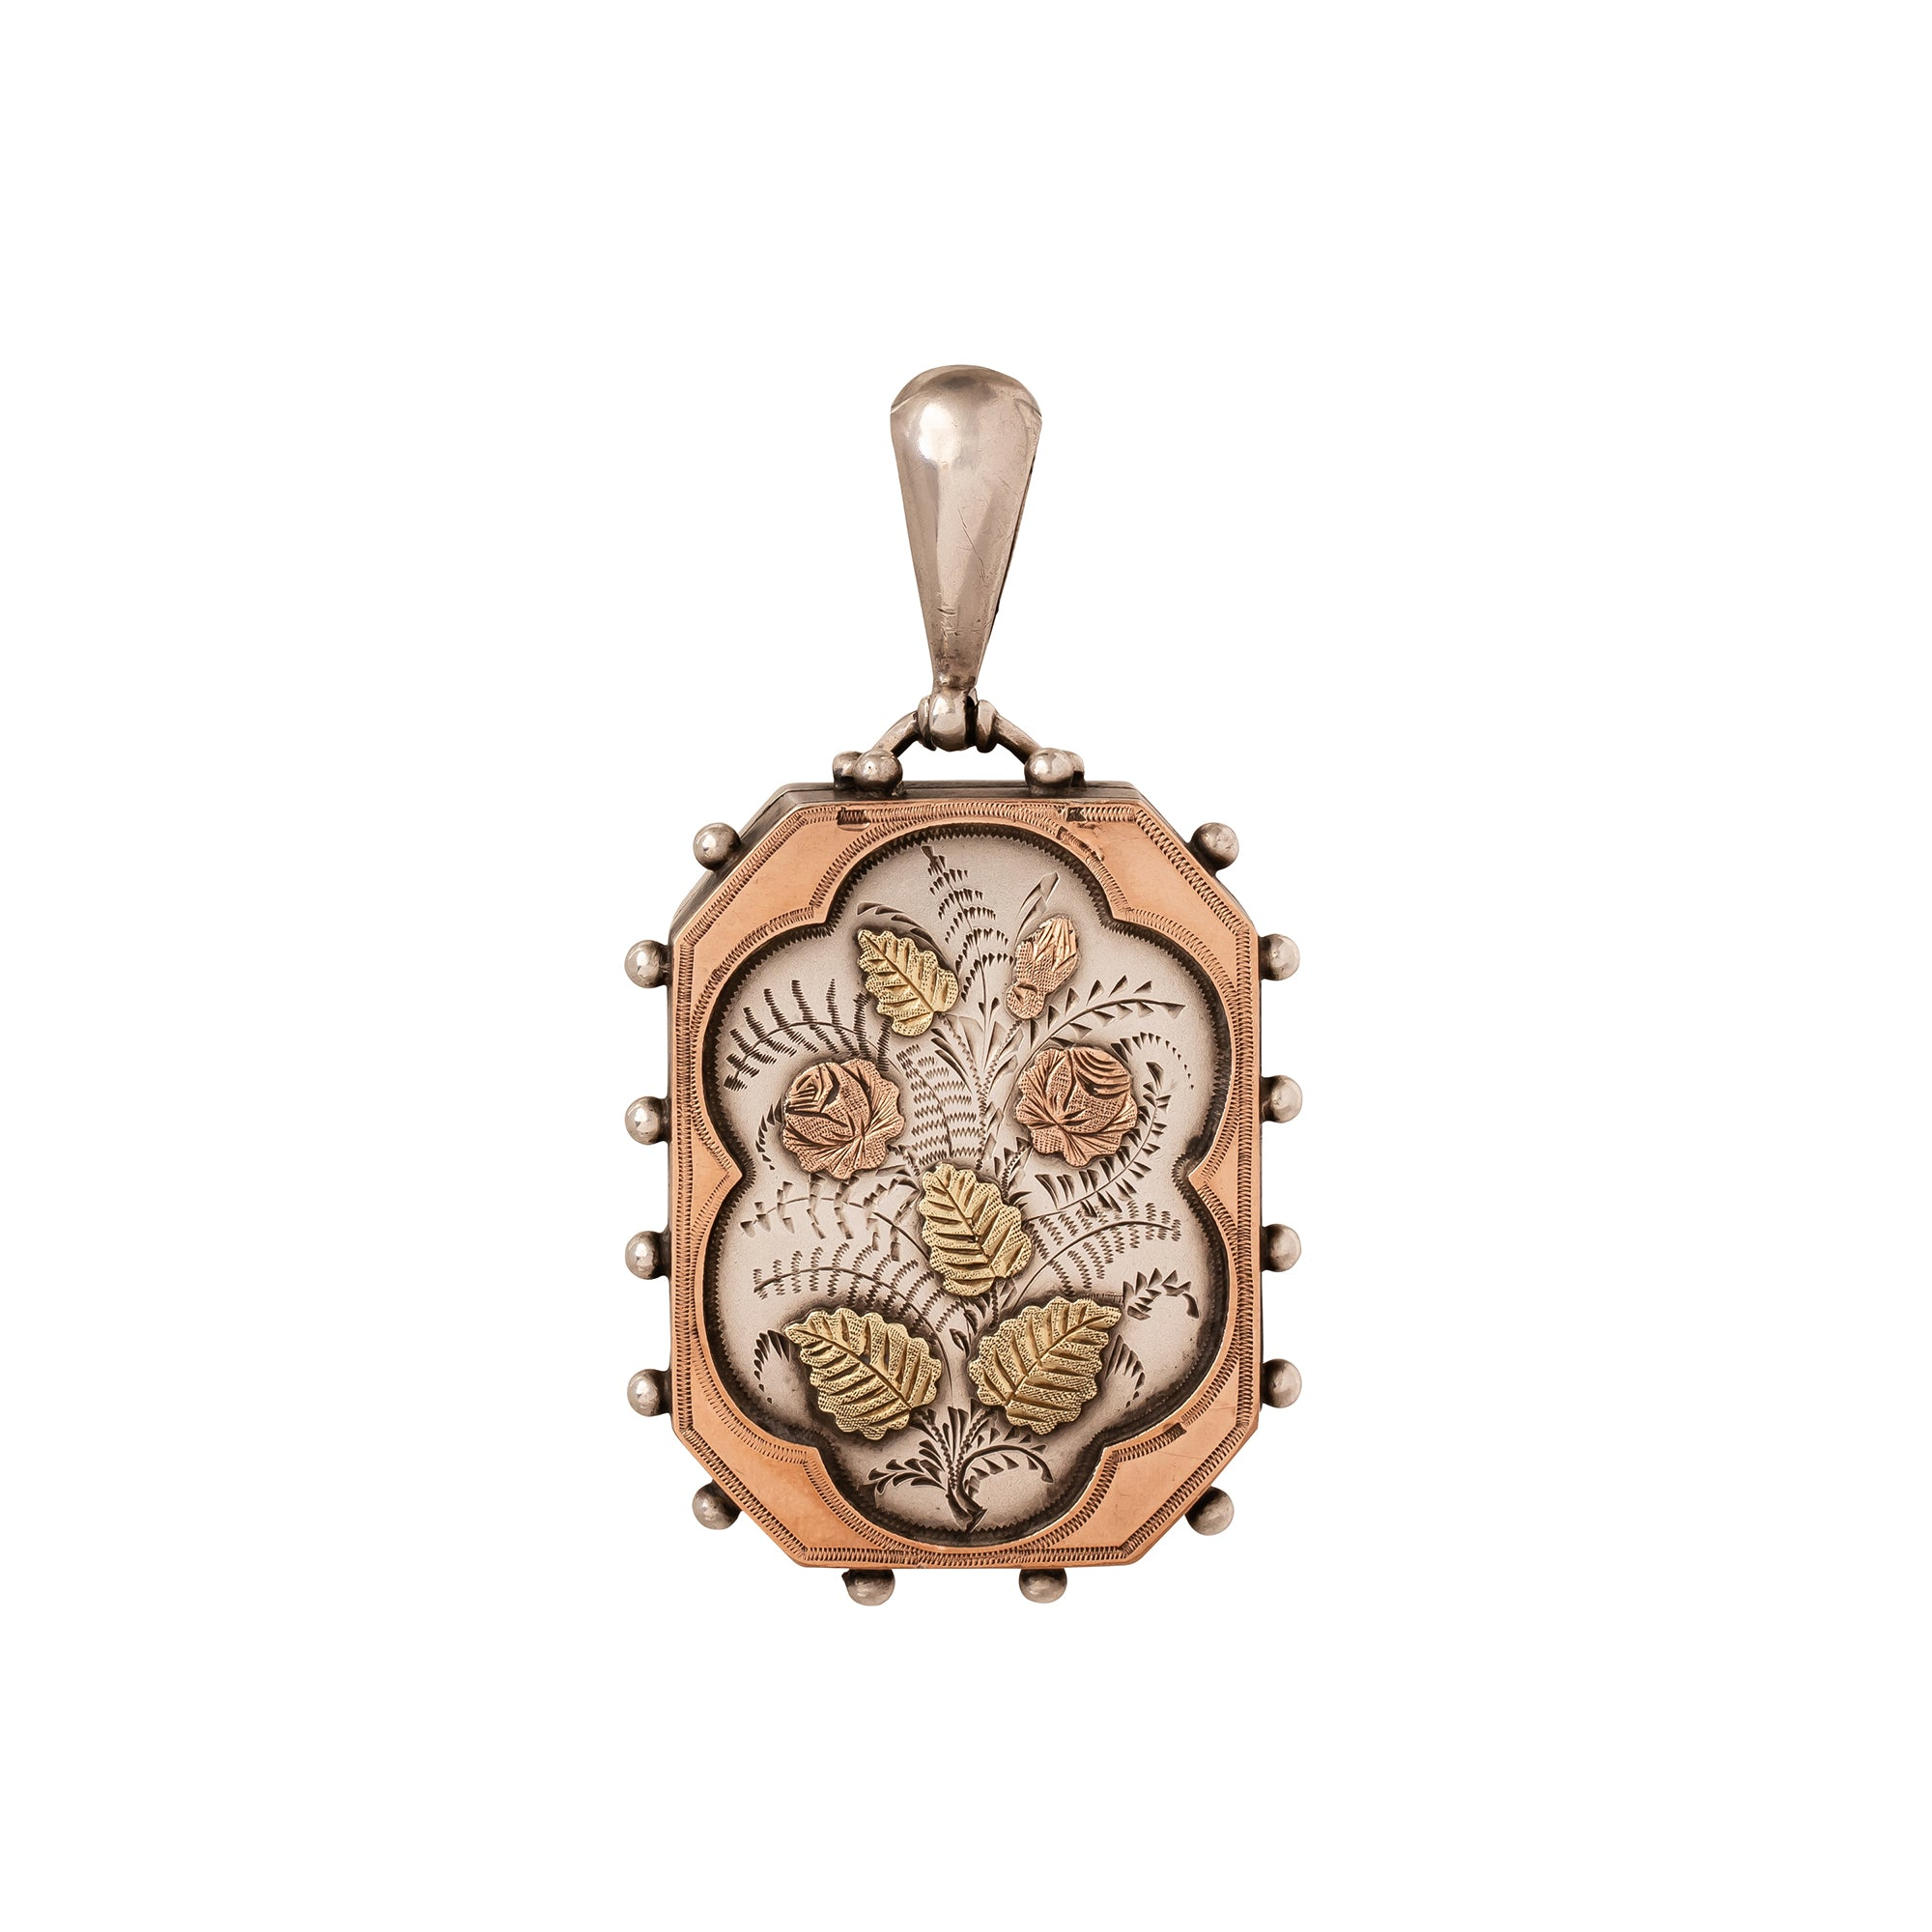 Antique & Vintage Jewelry English Silver and Rose Gold Flower Motif Locket - Charms & Pendants - Broken English Jewelry